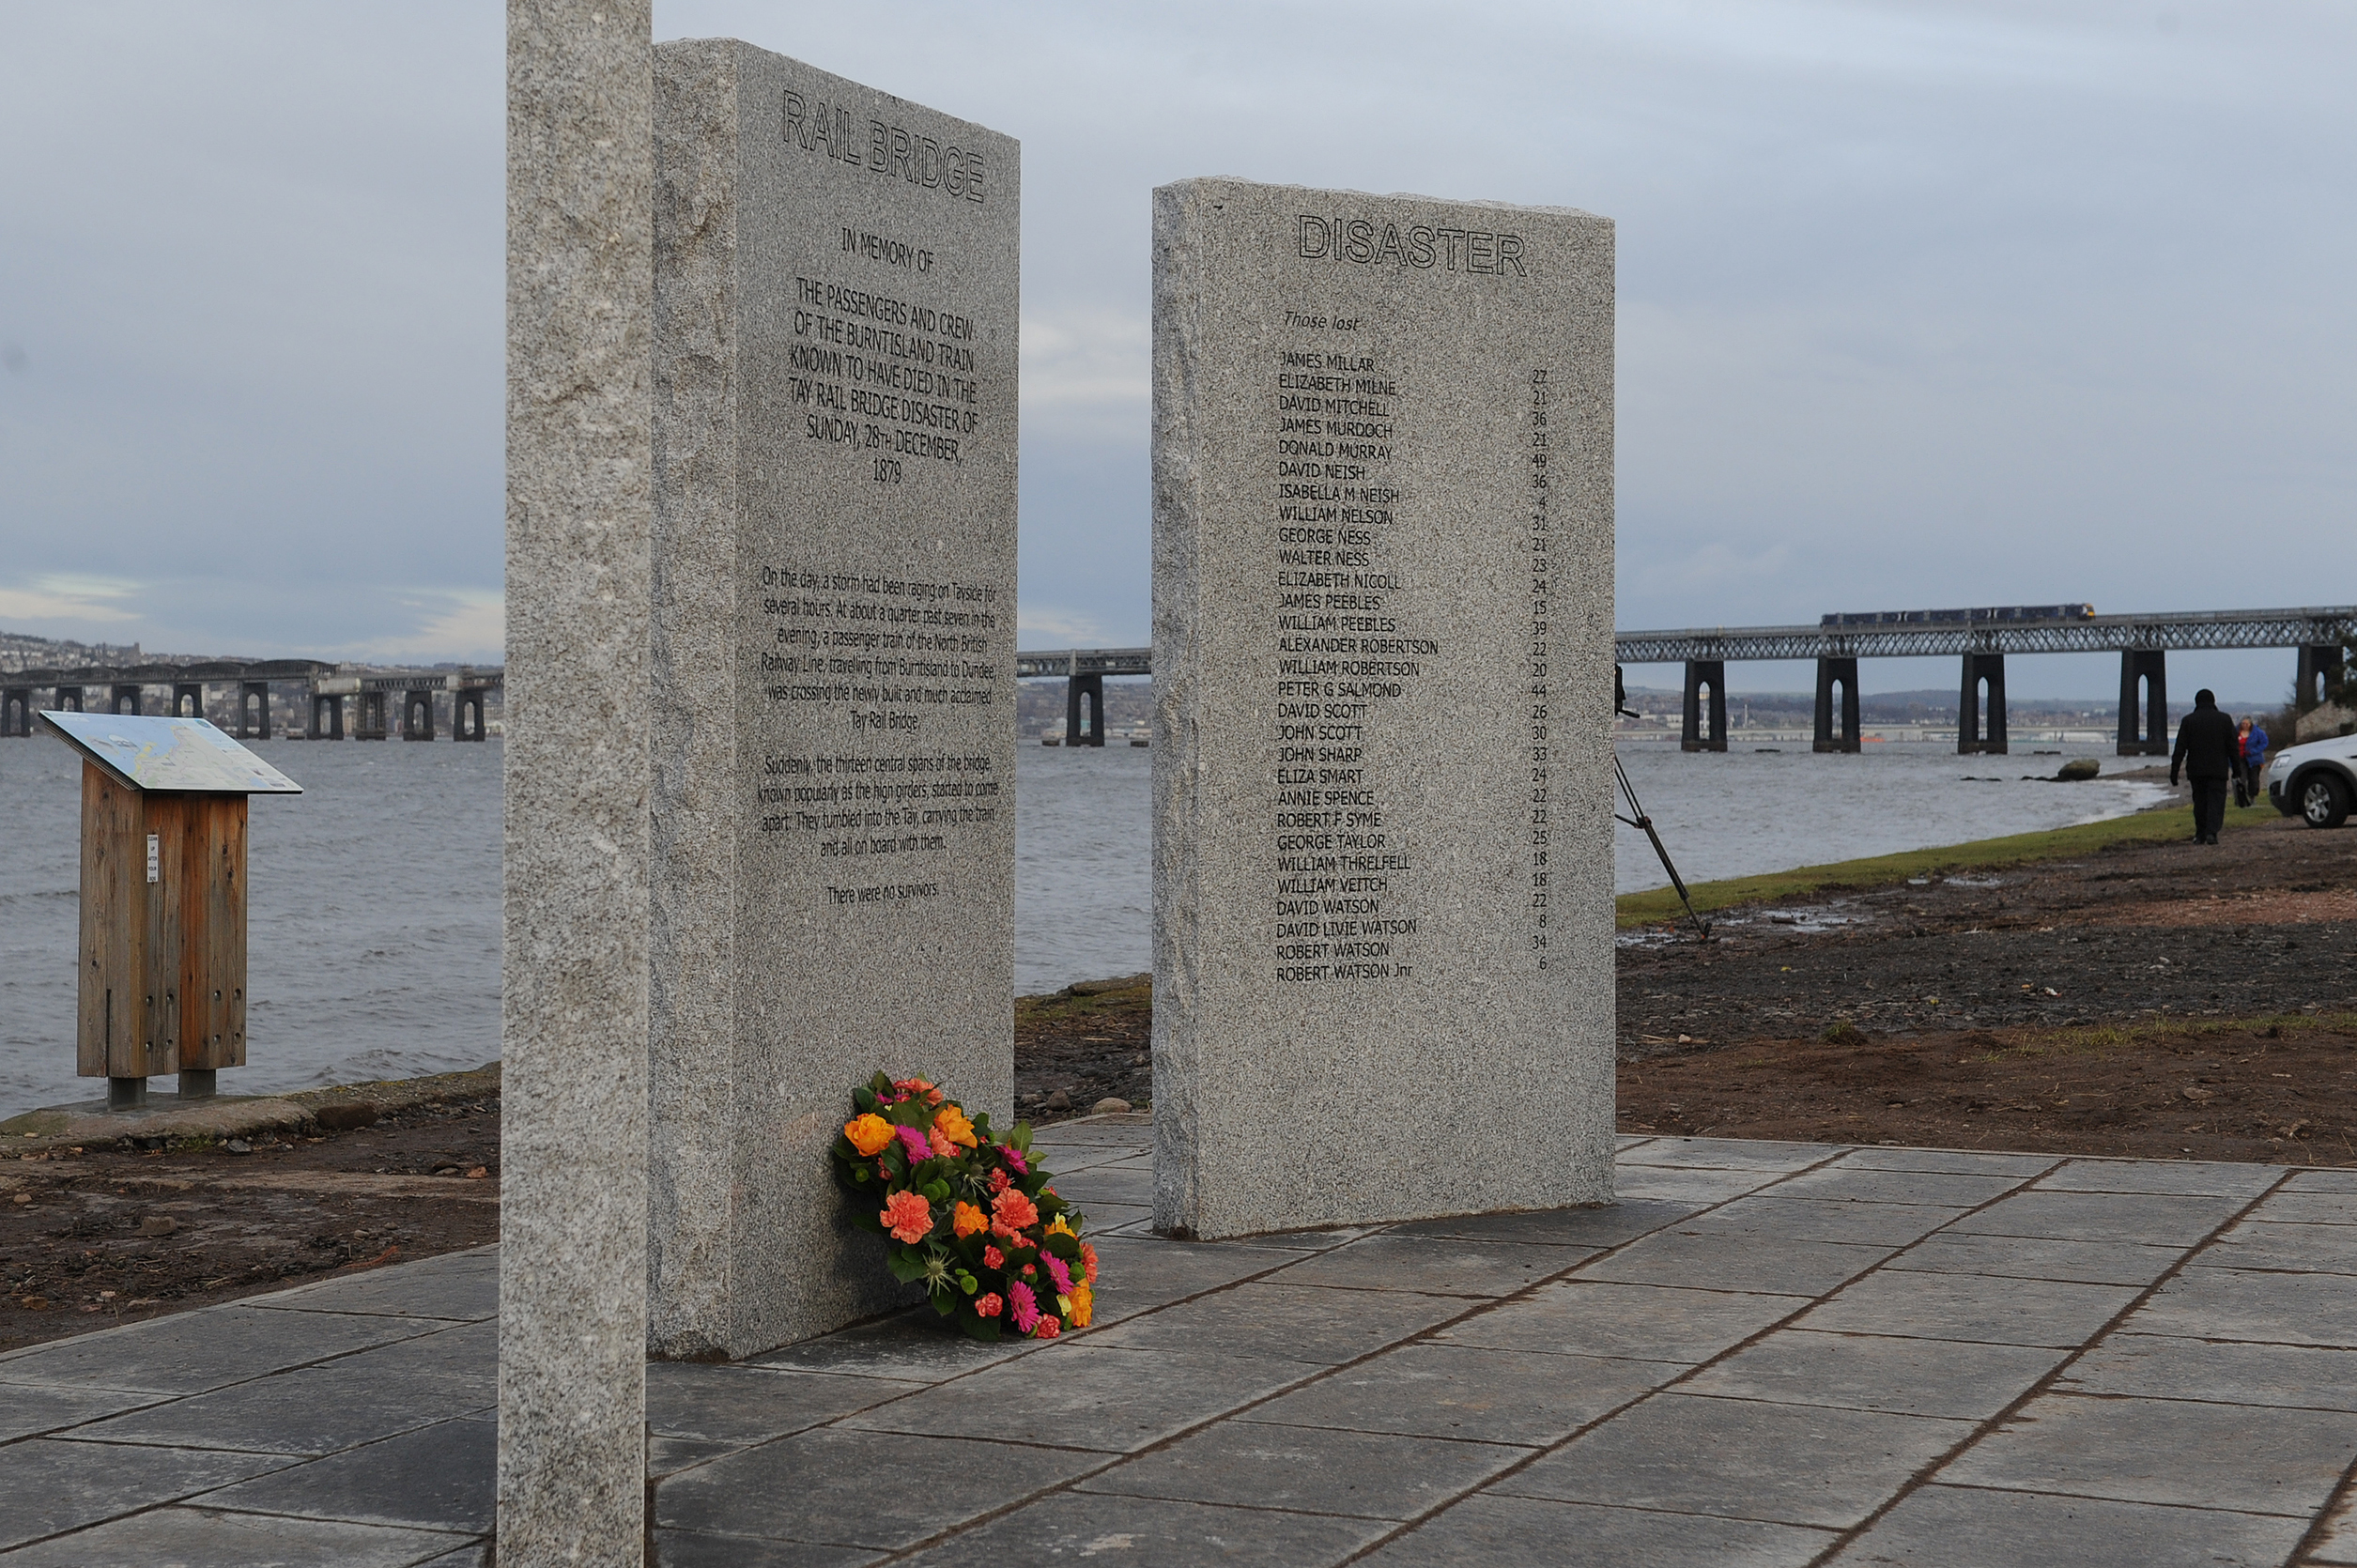 A memorial to the victims of the Tay Rail Bridge Disaster in Wormit. A similar memorial is across the river in Dundee.